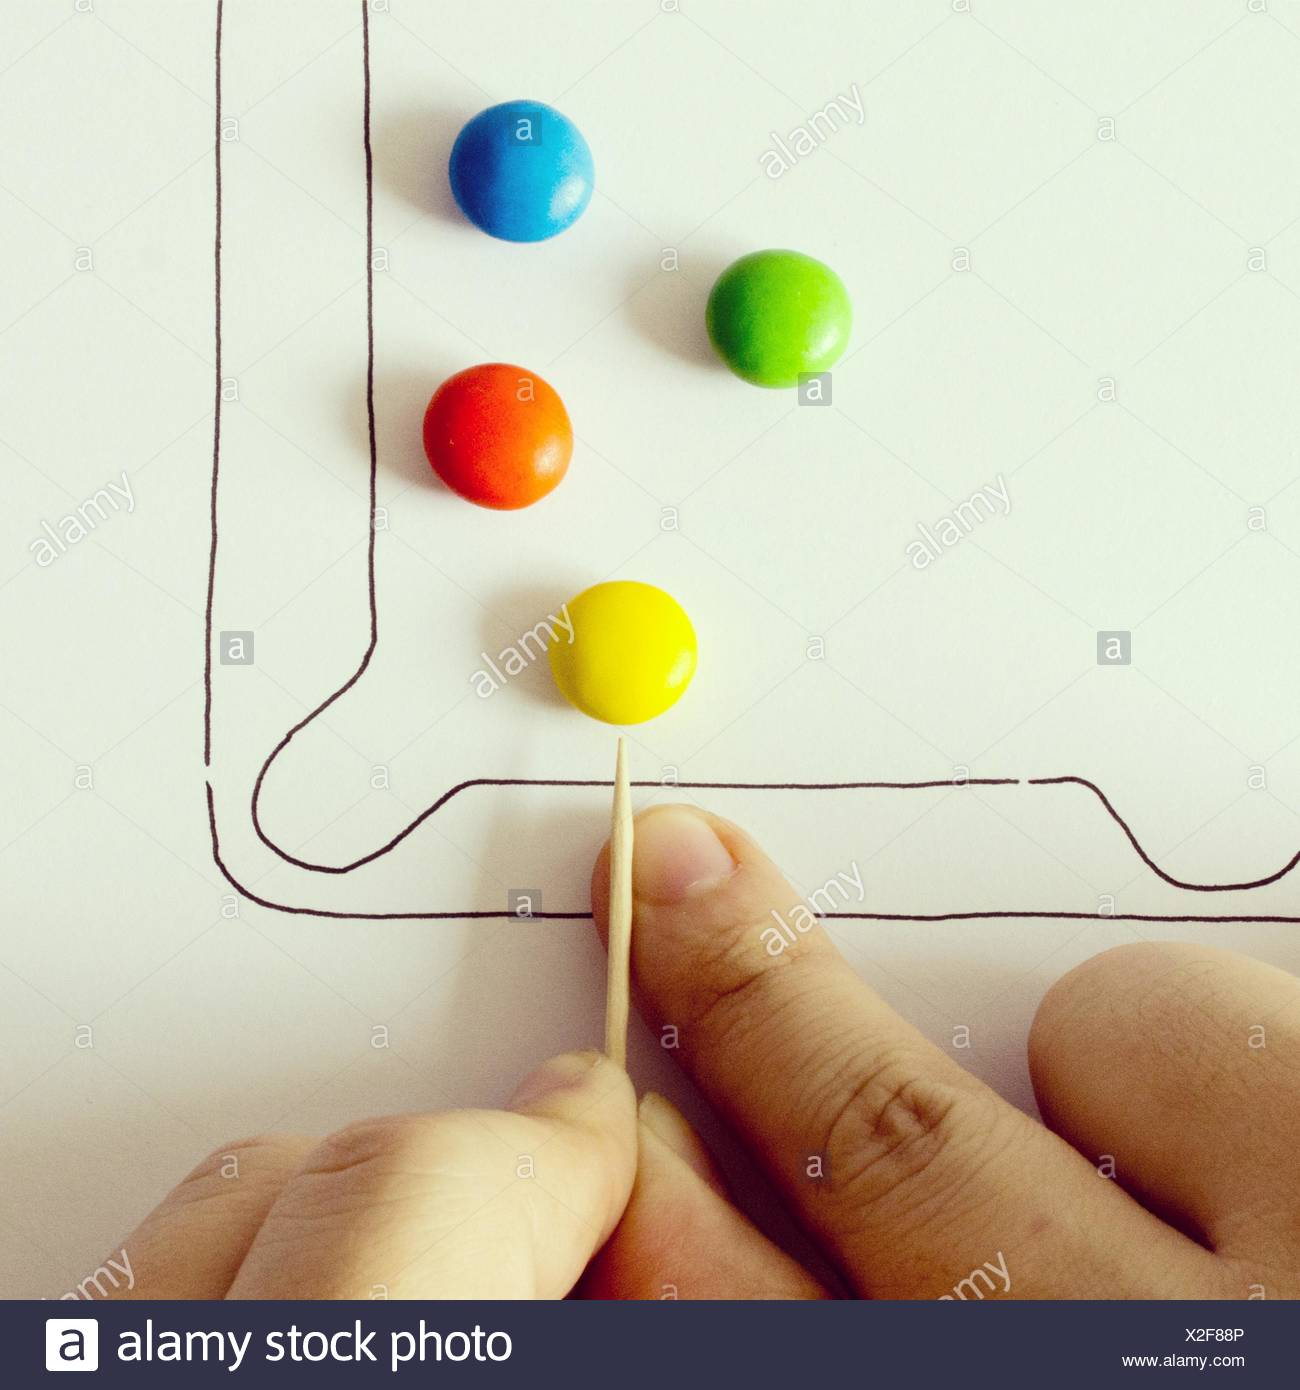 Illustration of pool game with colorful candies - Stock Image